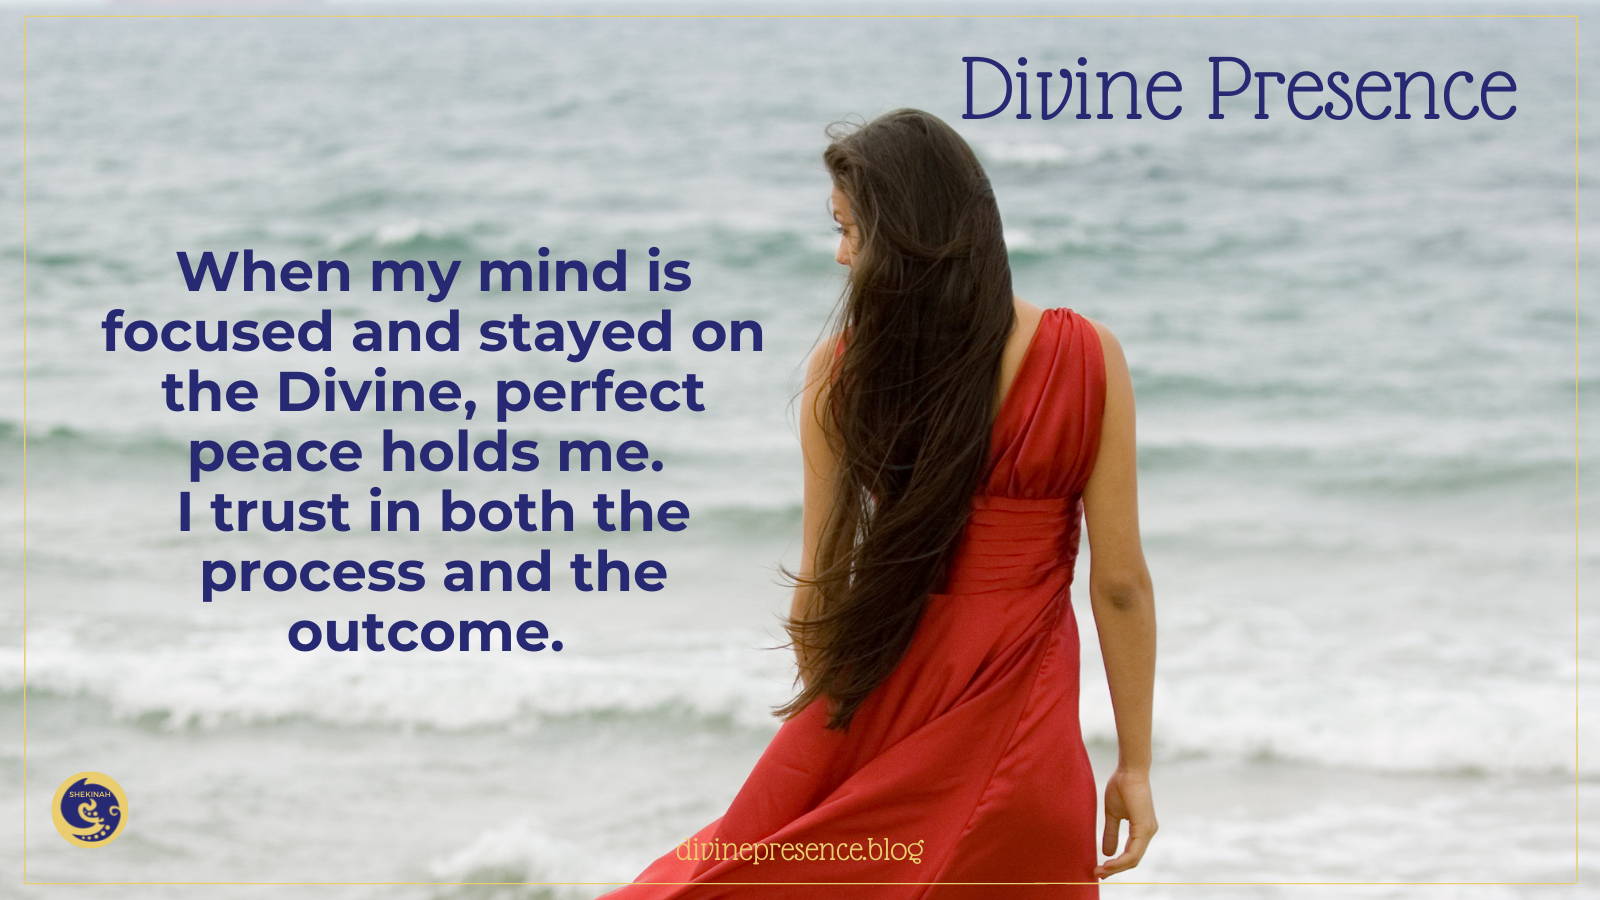 When my mind is focused and stayed on the Divine, perfect peace holds me. I trust in both the process and the outcome. Isaiah 26:3